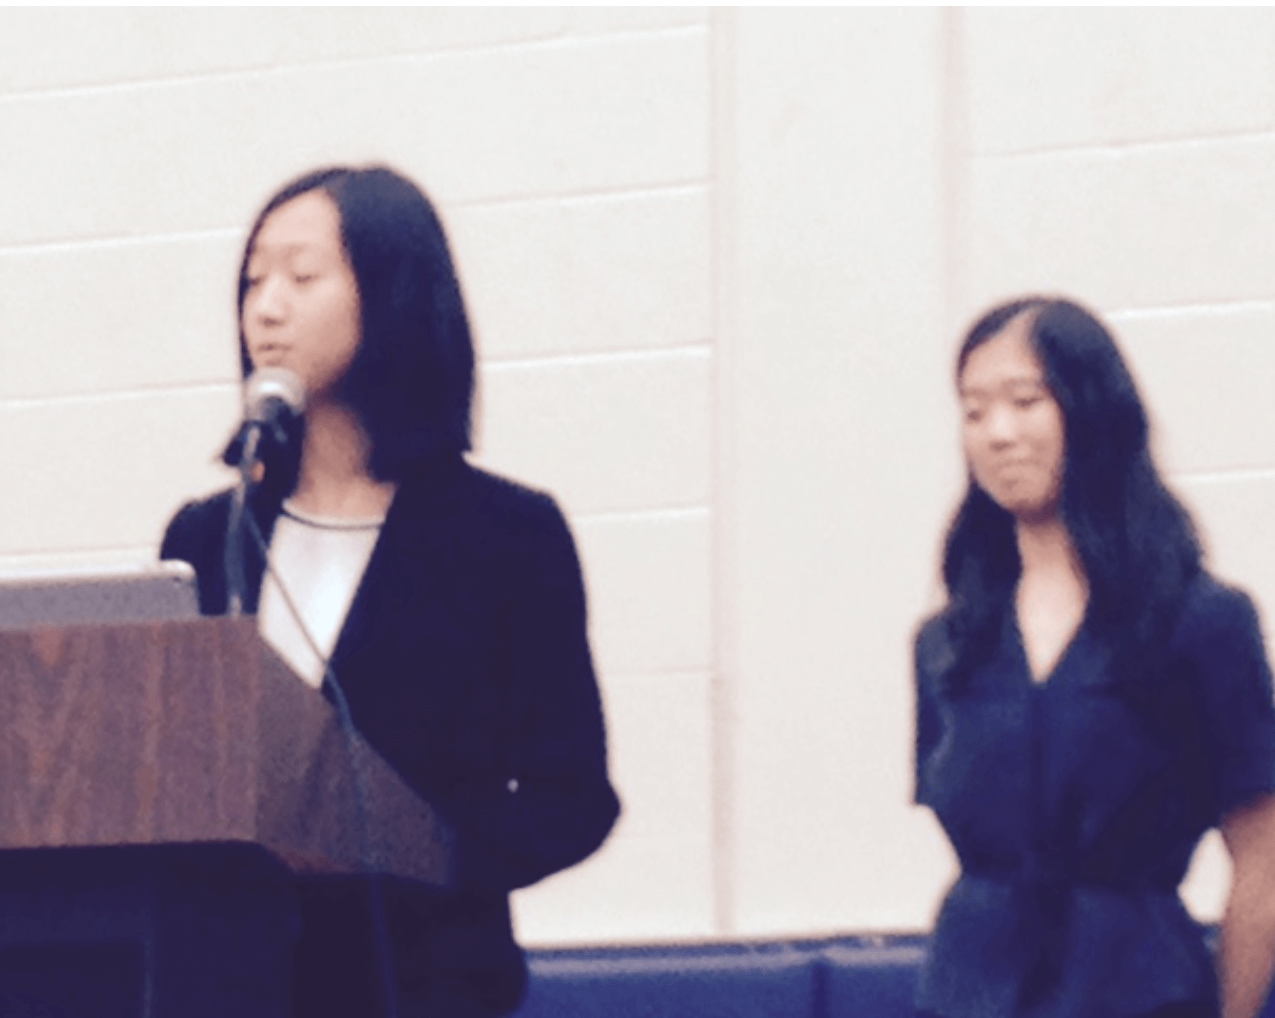 Lillian and Isabella deliver speeches for the TSJCL Executive Board elections.